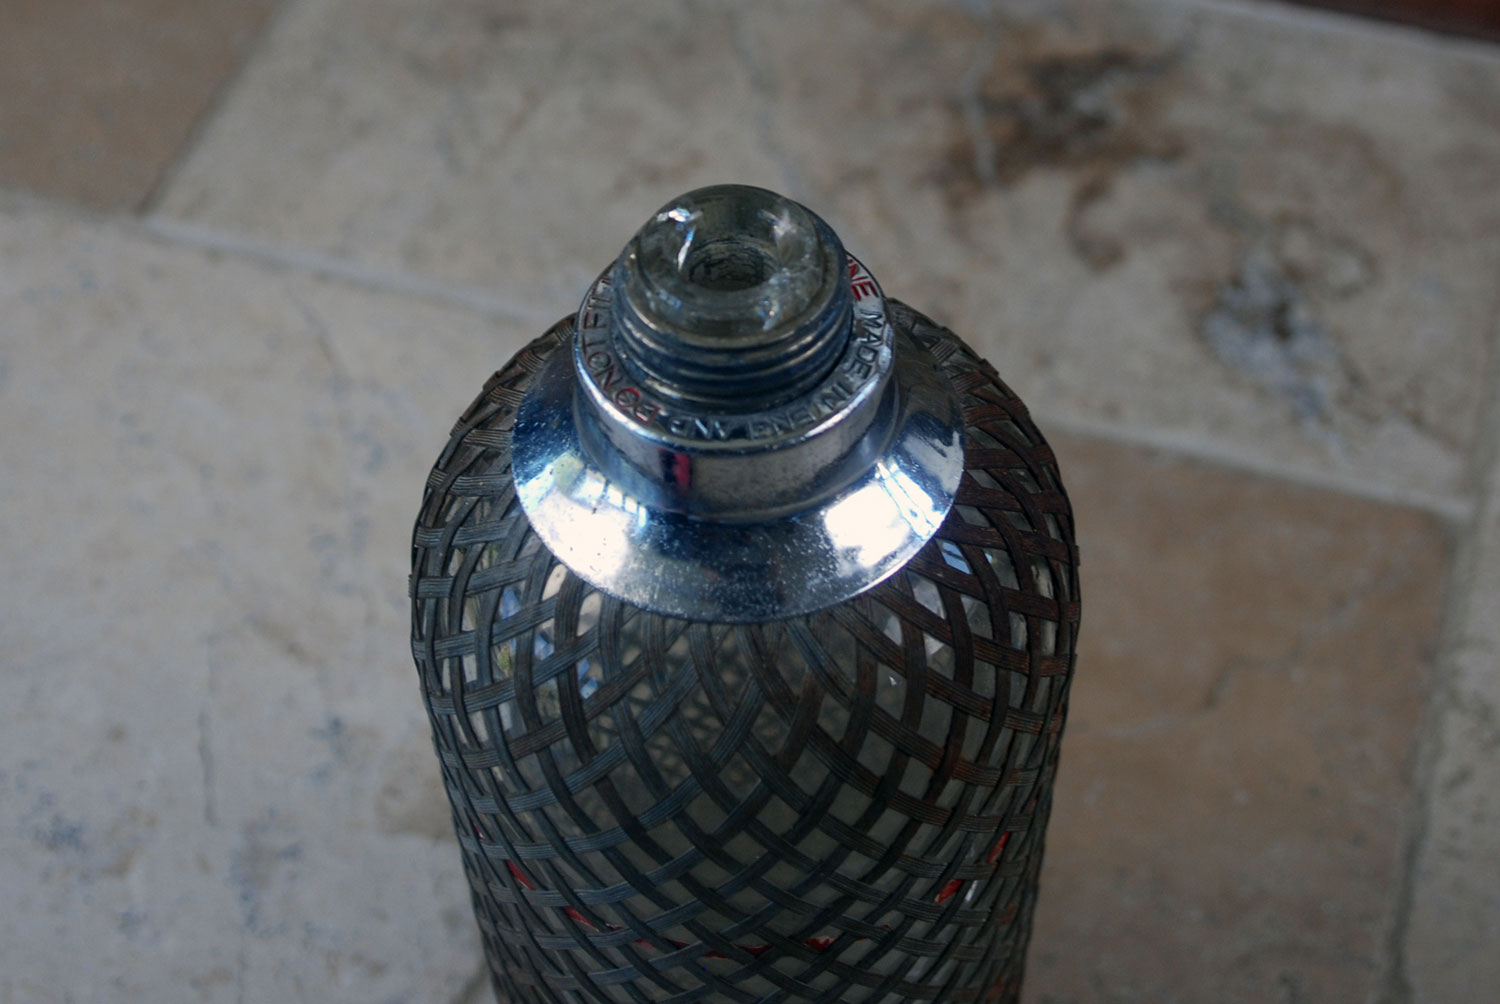 Antique 1930s sparklets soda syphon siphon wire mesh pewter coated